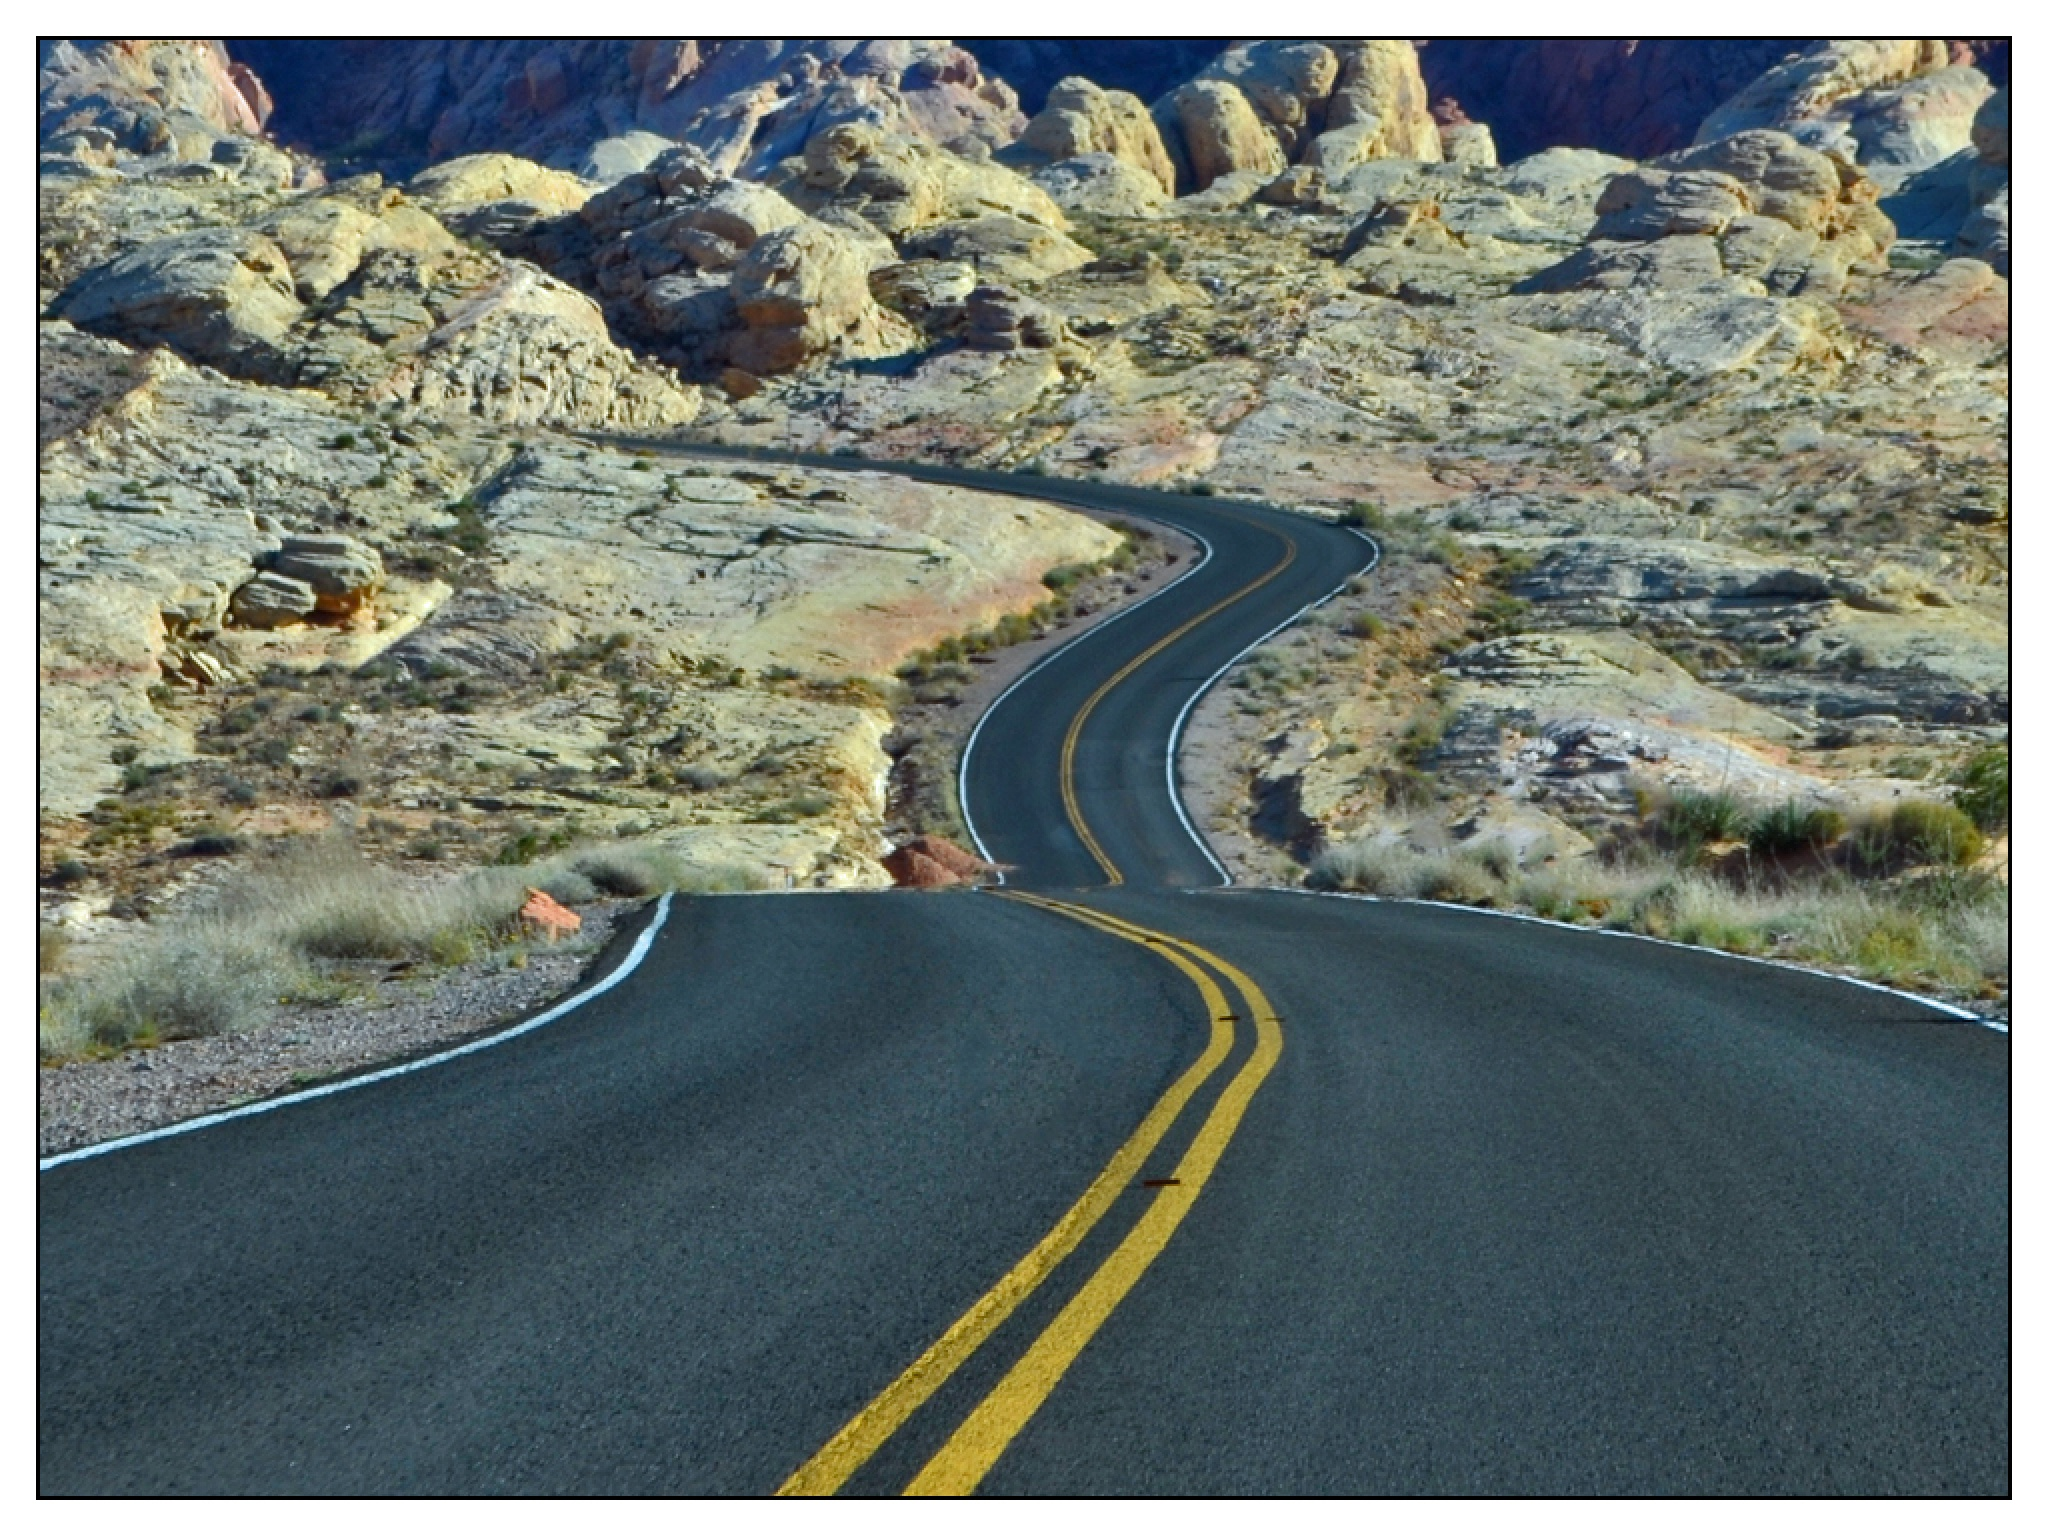 Winding Road by Fay R. Dildine, Jr.